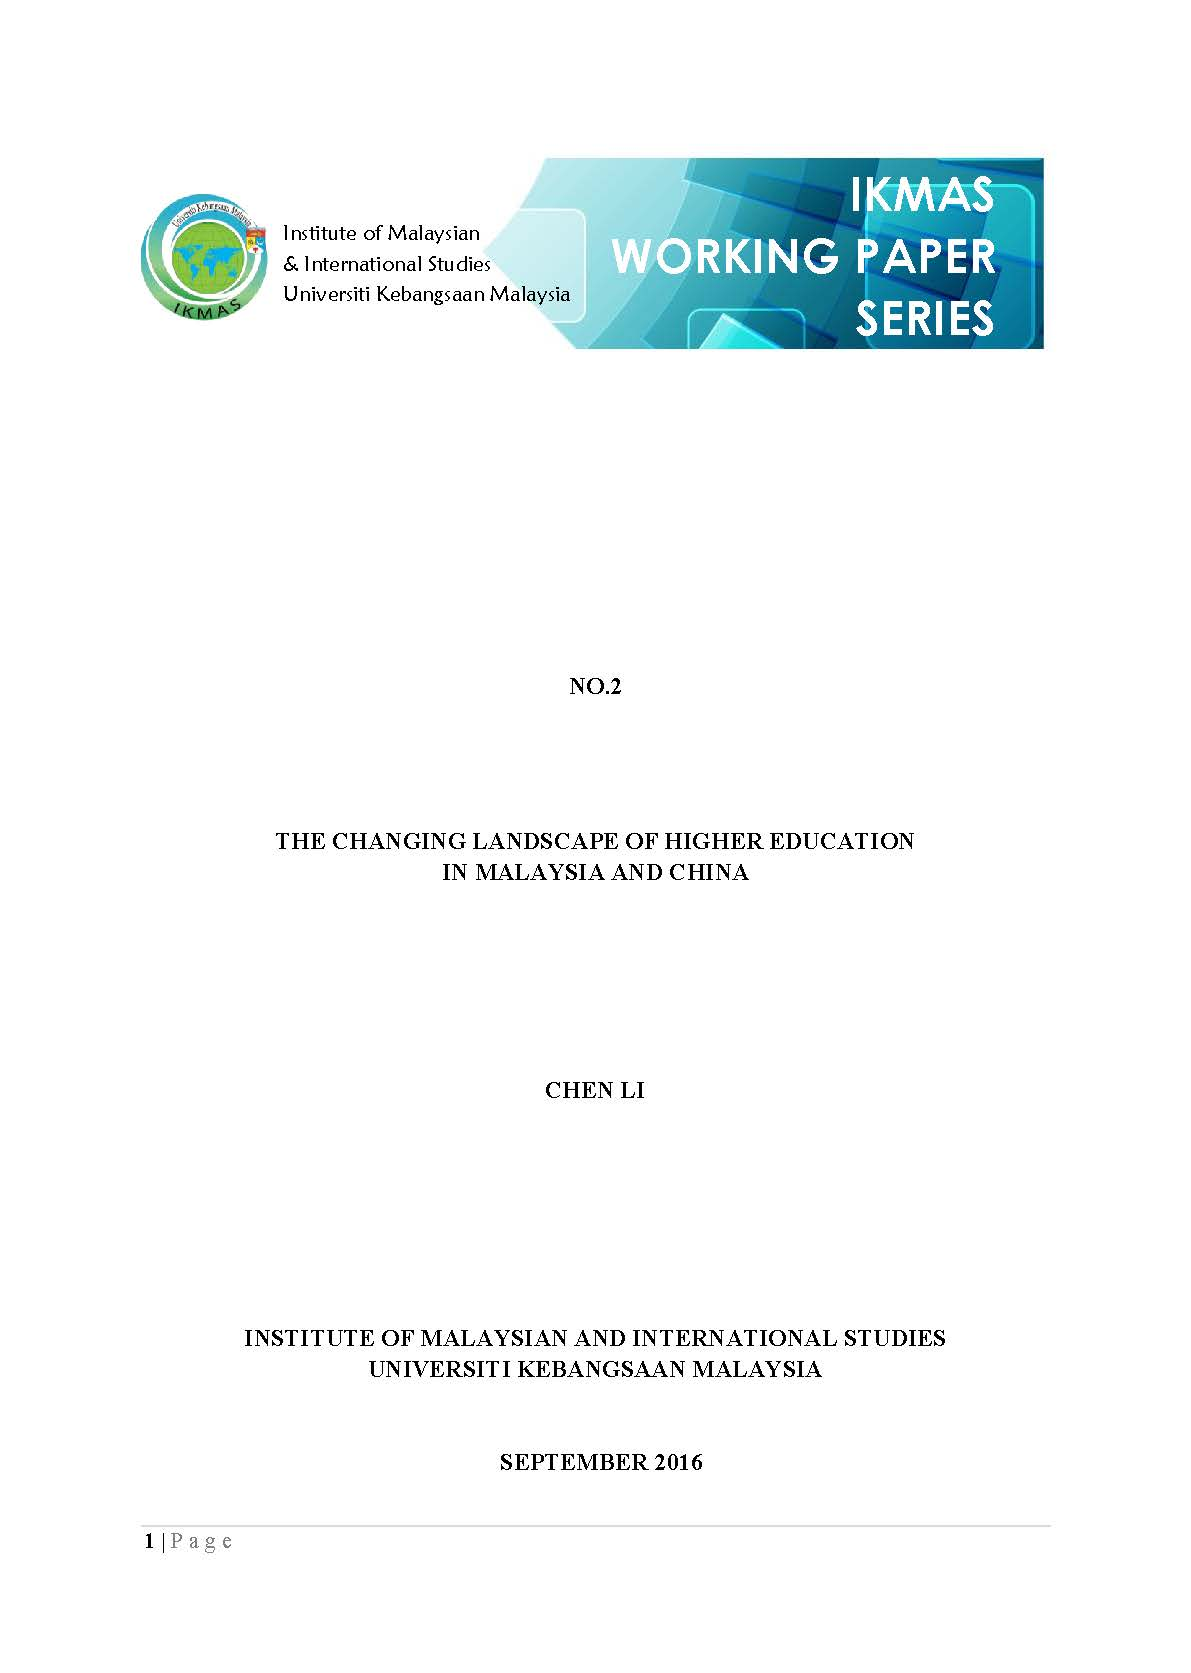 The Changing Landscape of Higher Education in Malaysia and China